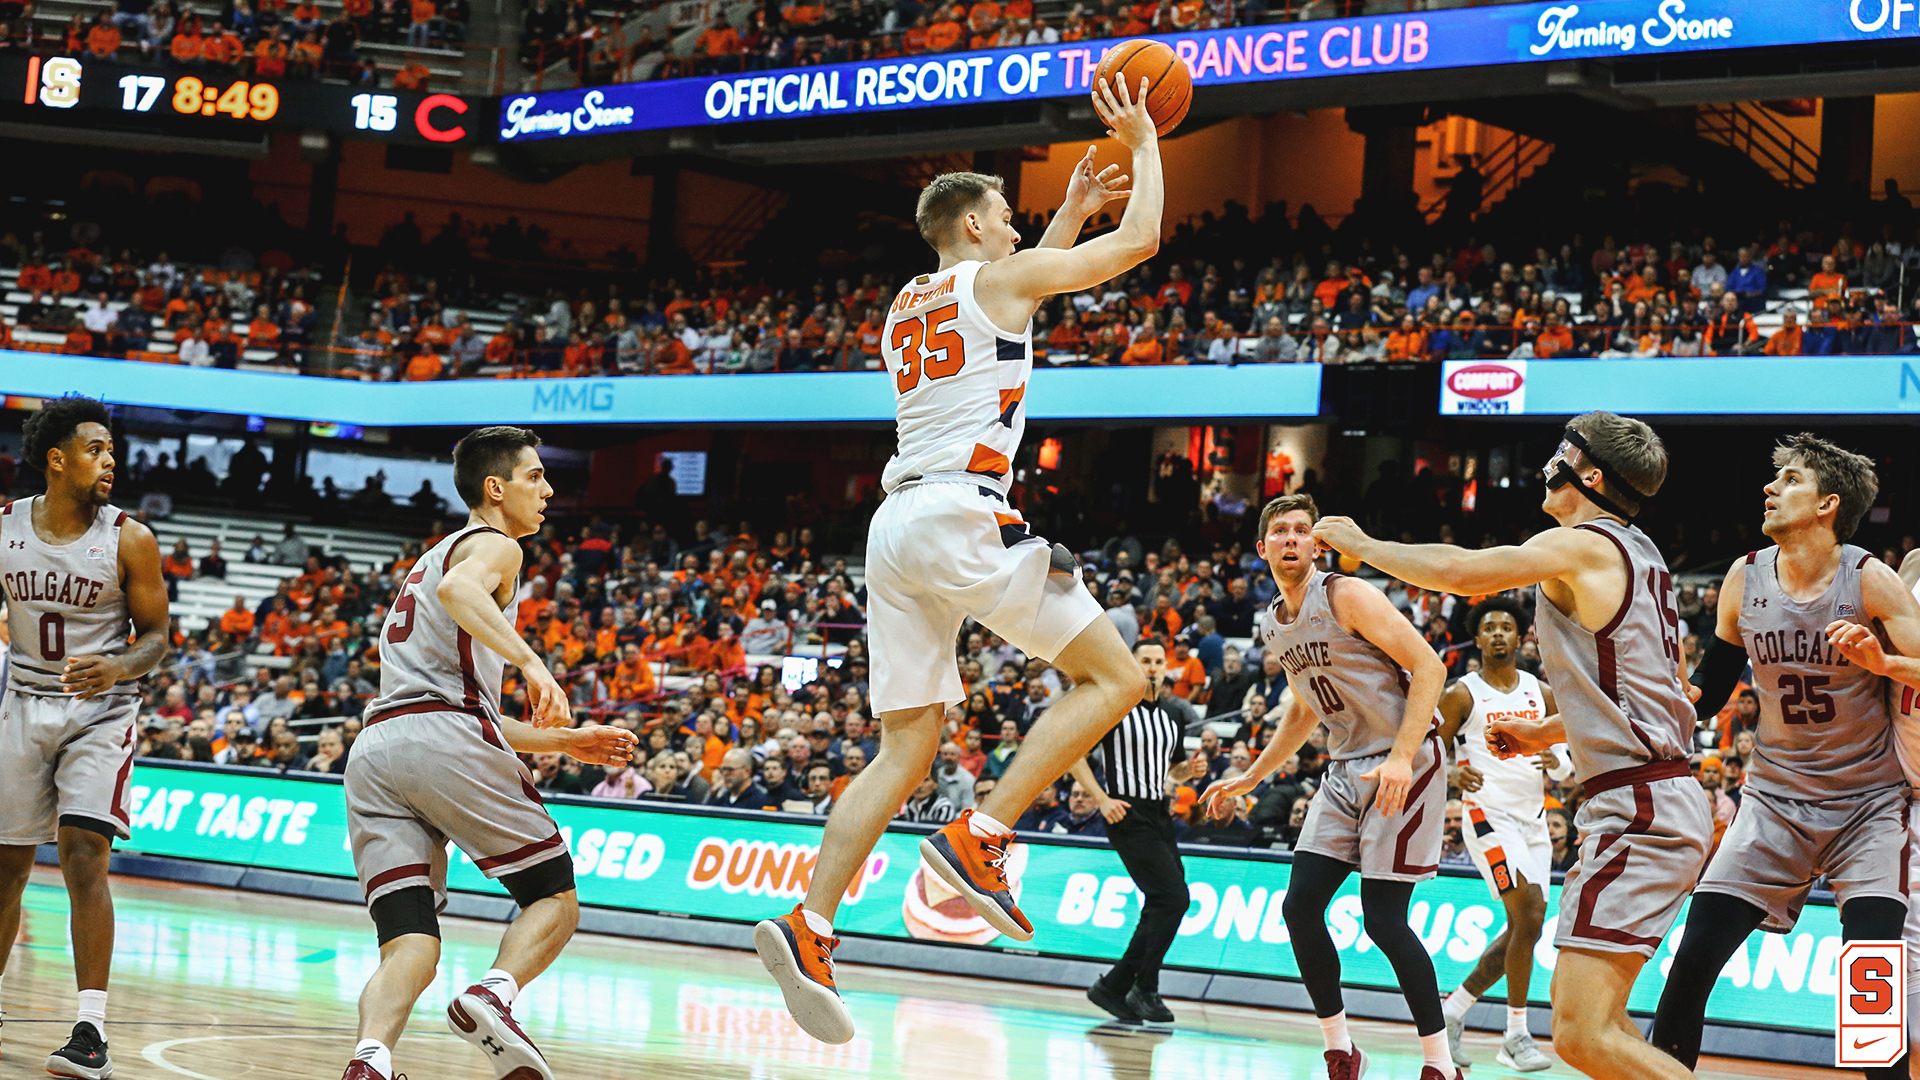 GAME NIGHT: Orange face Colgate tonight at Carrier Dome (preview & info)